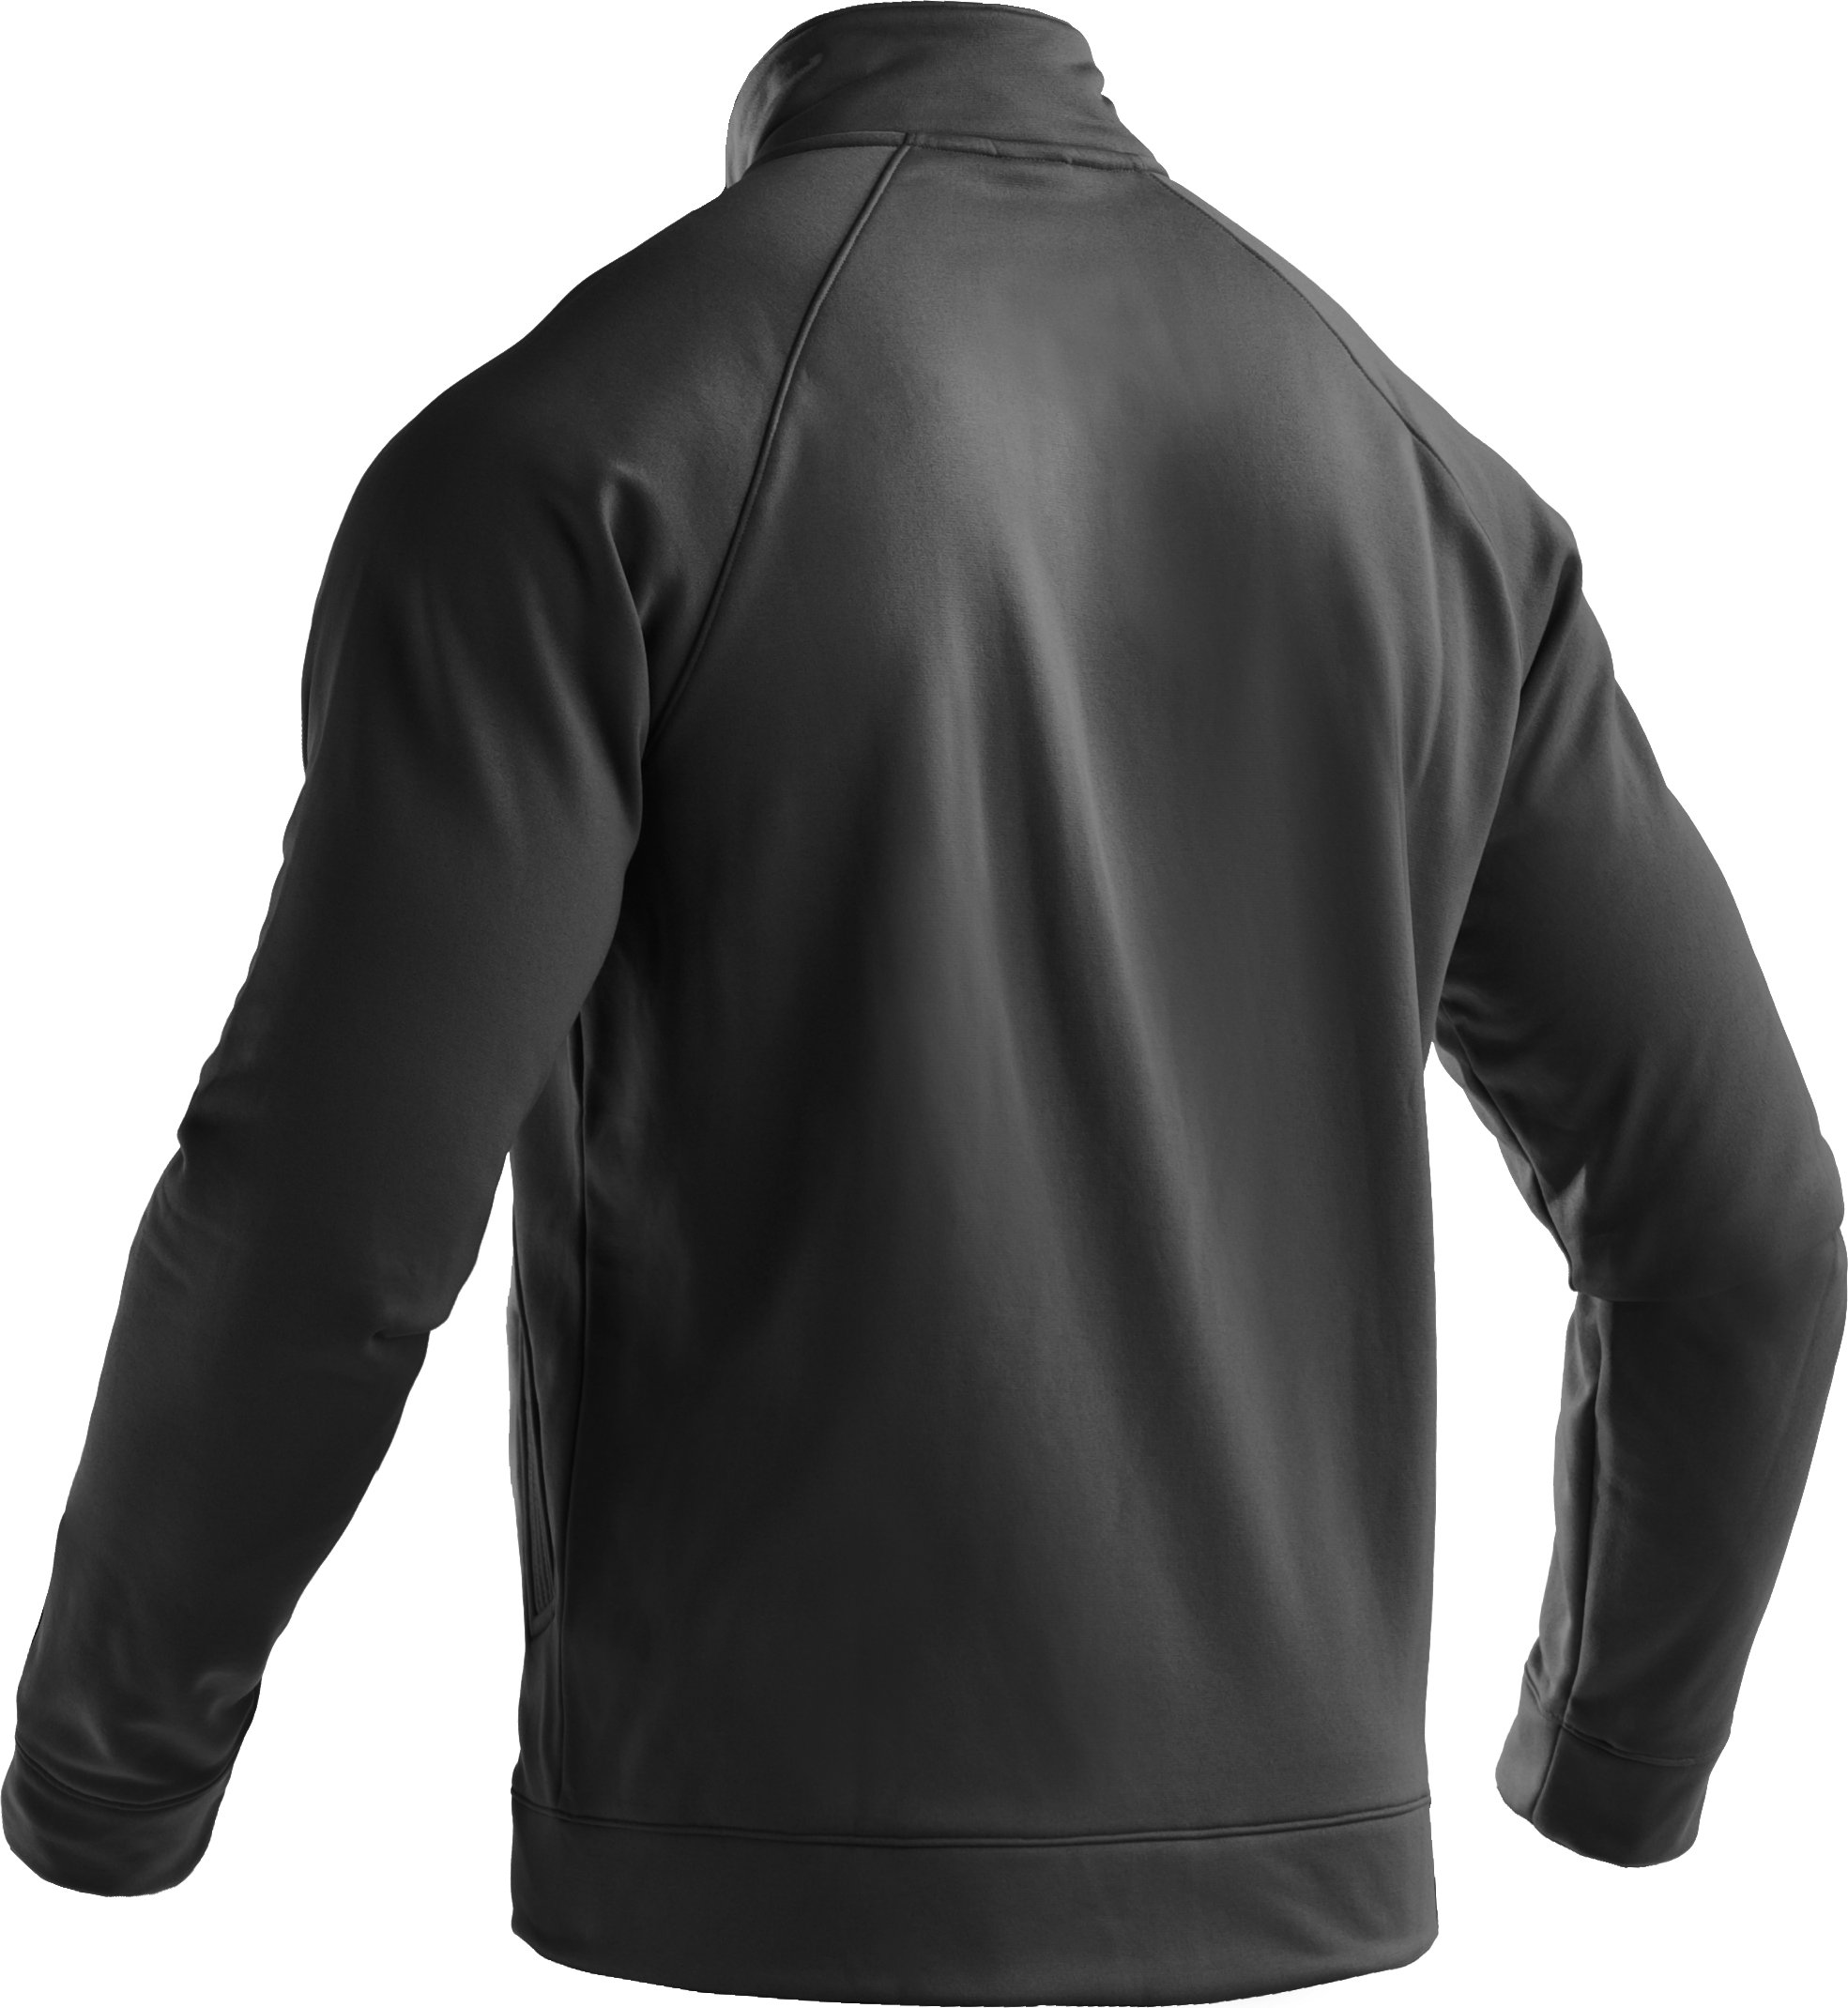 Men's Armour® Fleece Full Zip Jacket, Black